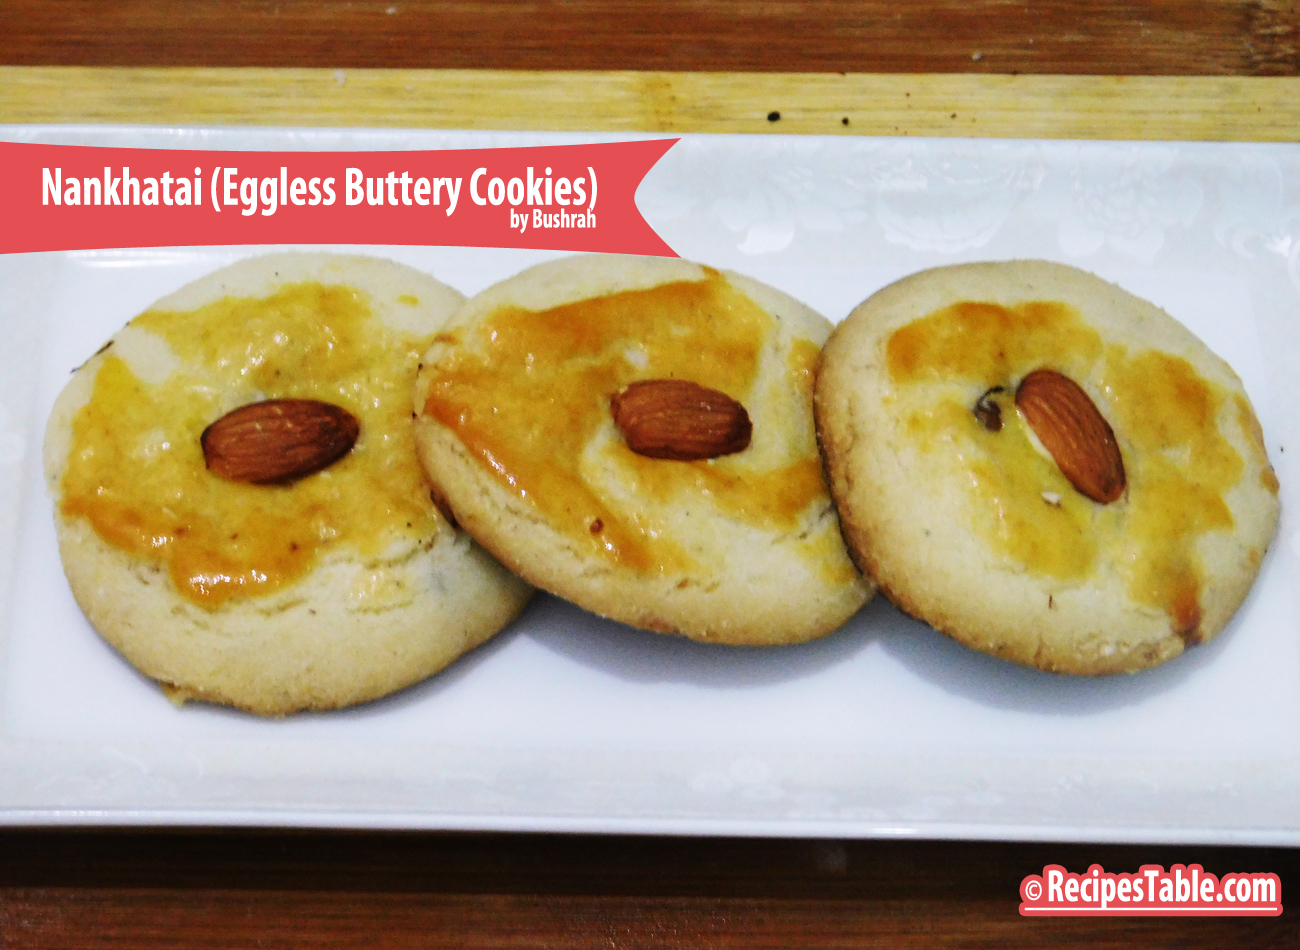 Nankhatai recipe (Eggless Buttery Cookies)